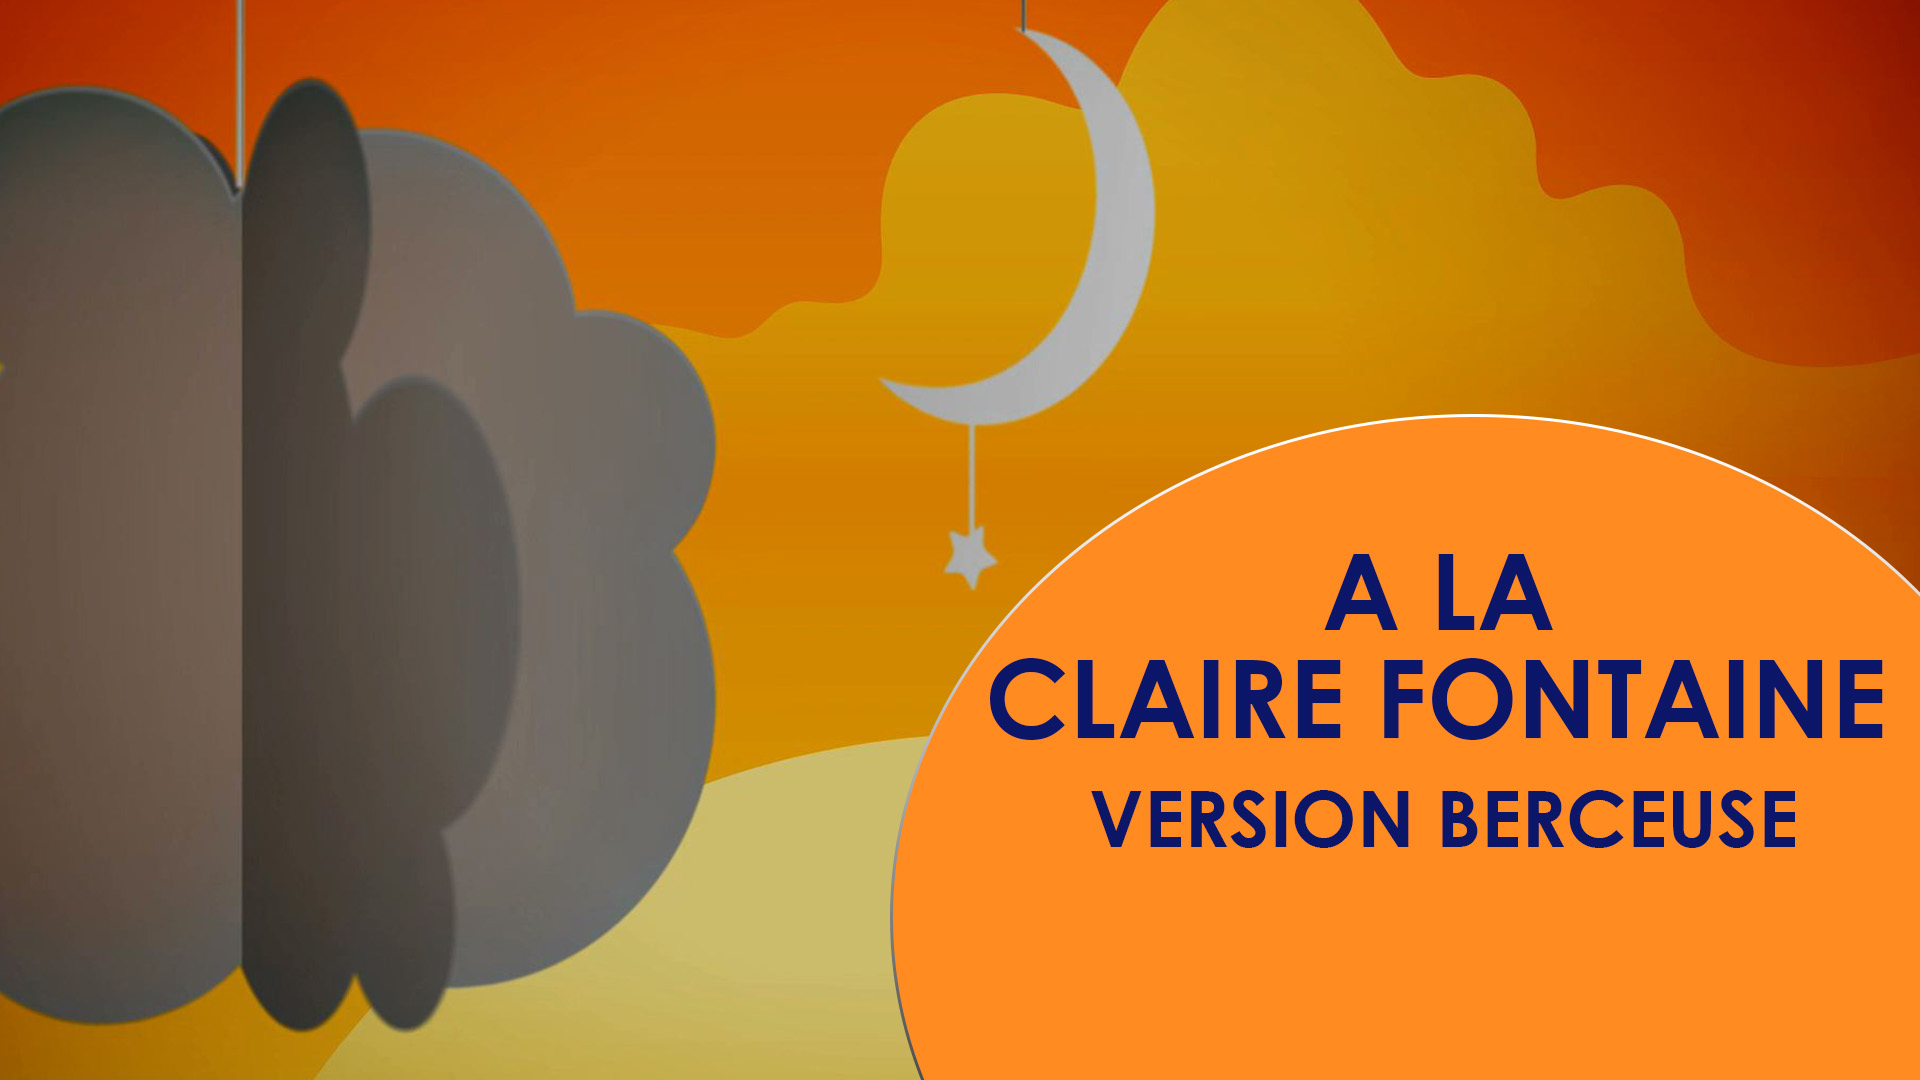 A LA CLAIRE FONTAINE - Version Berceuse Radio Doudou